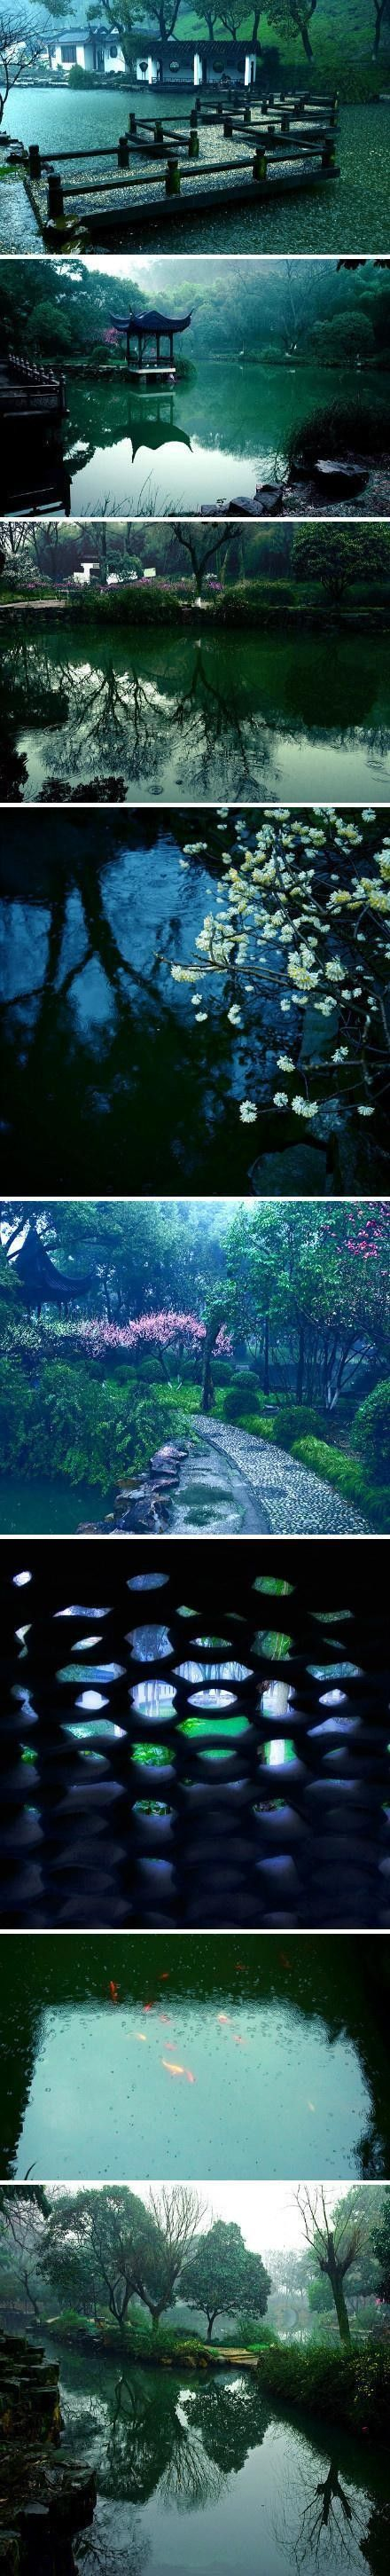 best 25 wuxi ideas on pinterest cherry blossoms in dc china